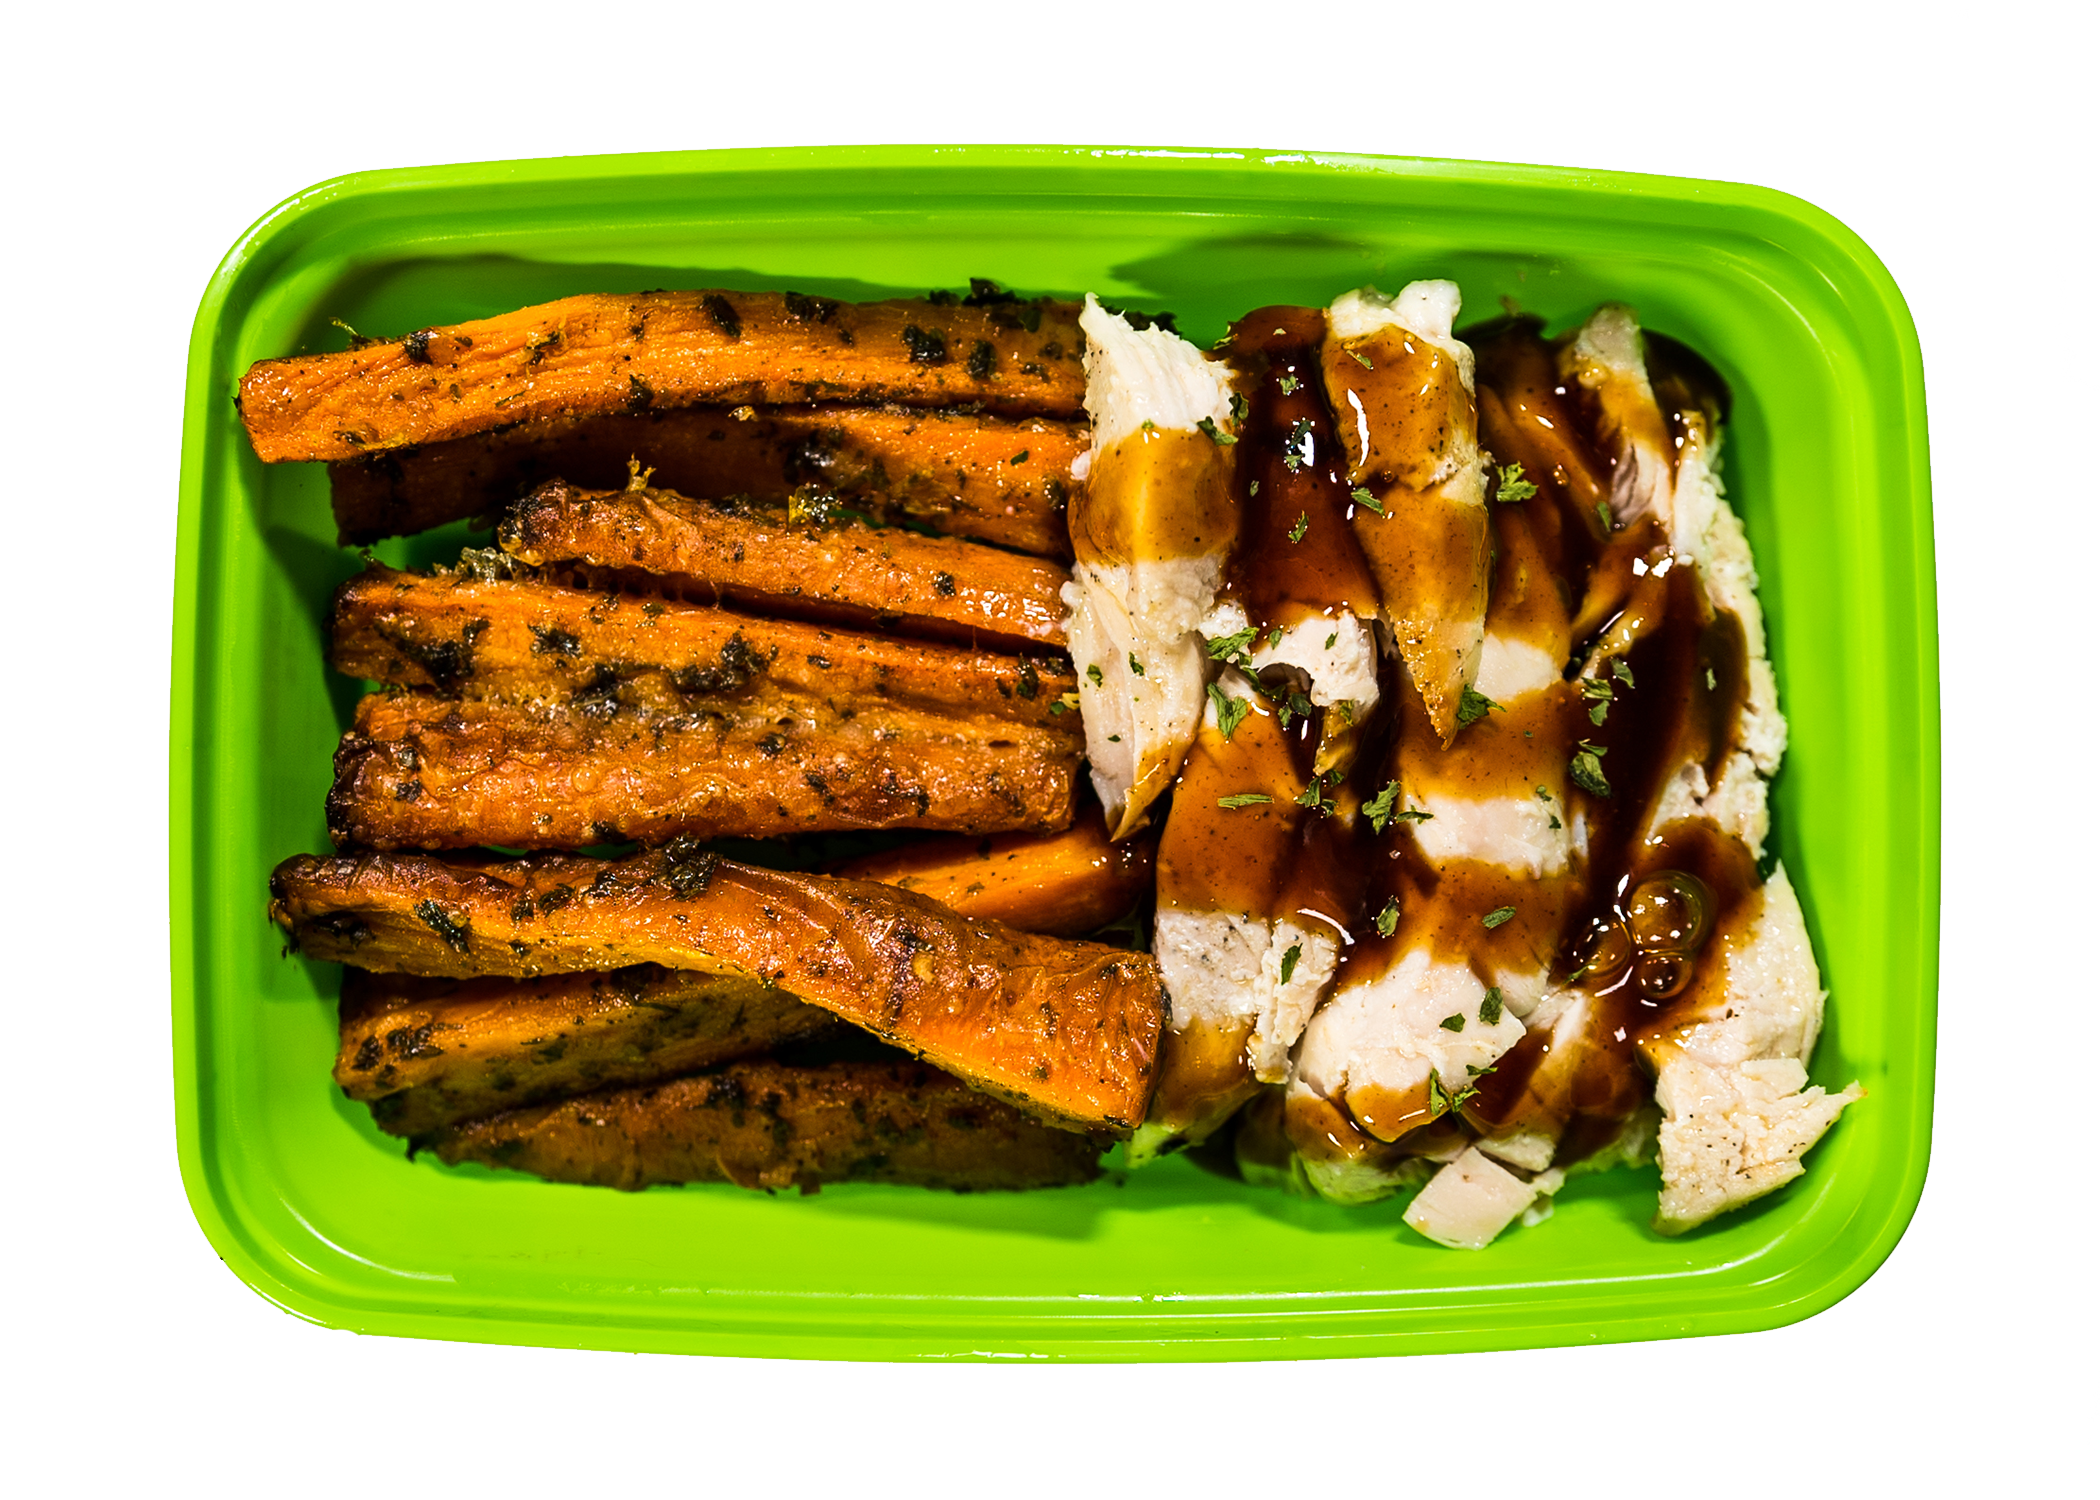 Baja Chicken & Carrot Fries